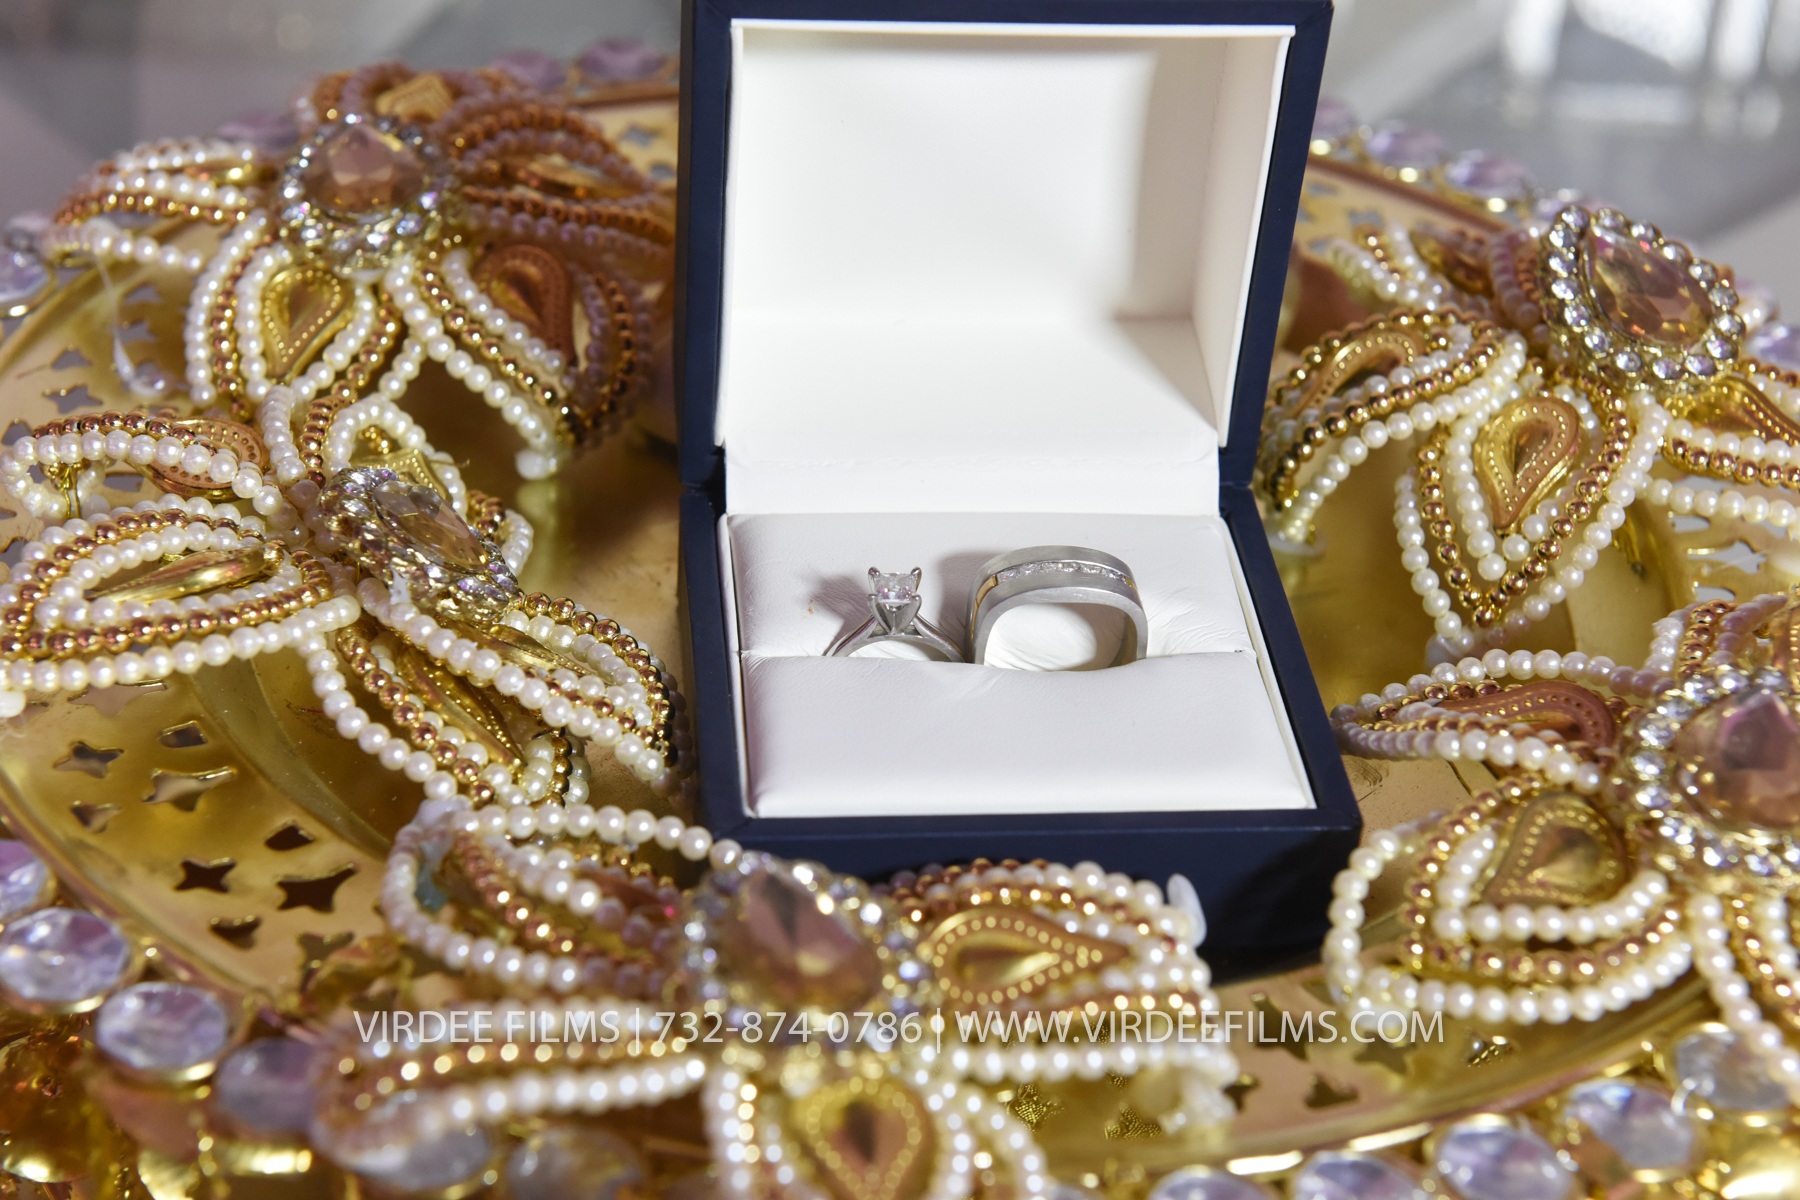 K+A RING (358)